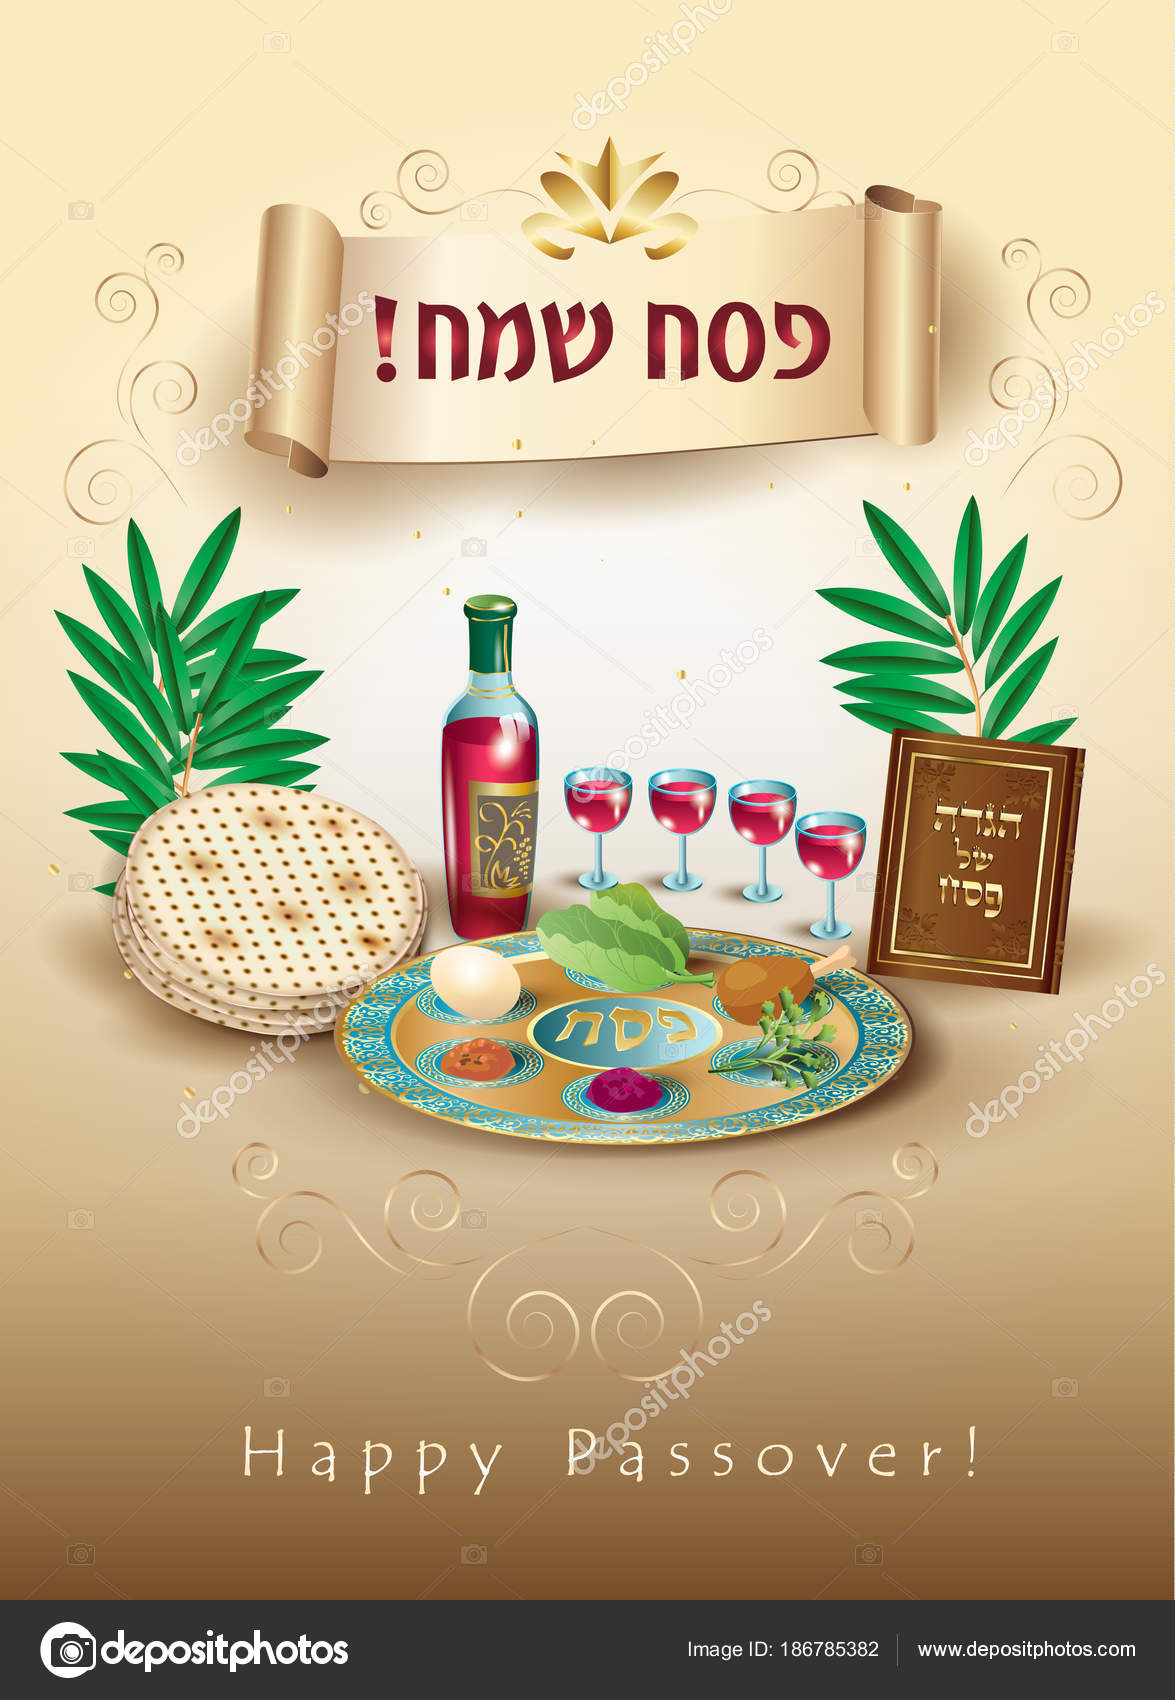 Happy passover holiday translate hebrew lettering greeting card happy passover holiday translate from hebrew lettering greeting card with decorative vintage floral frame four wine glass matzah jewish traditional m4hsunfo